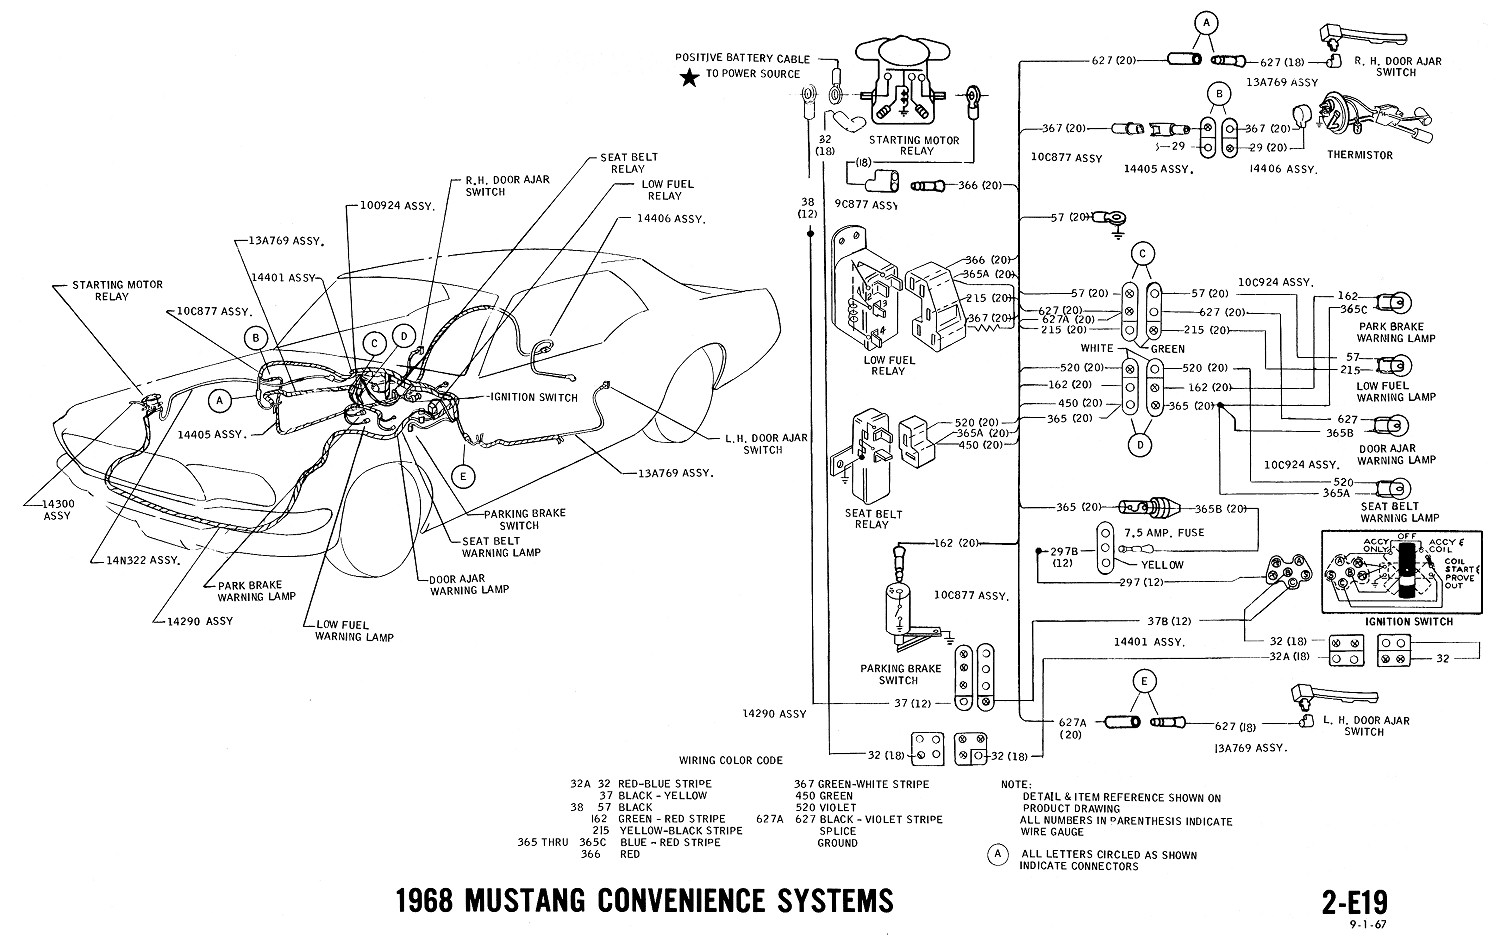 E19 1968 mustang wiring diagrams evolving software 67 mustang dash wiring diagram at virtualis.co